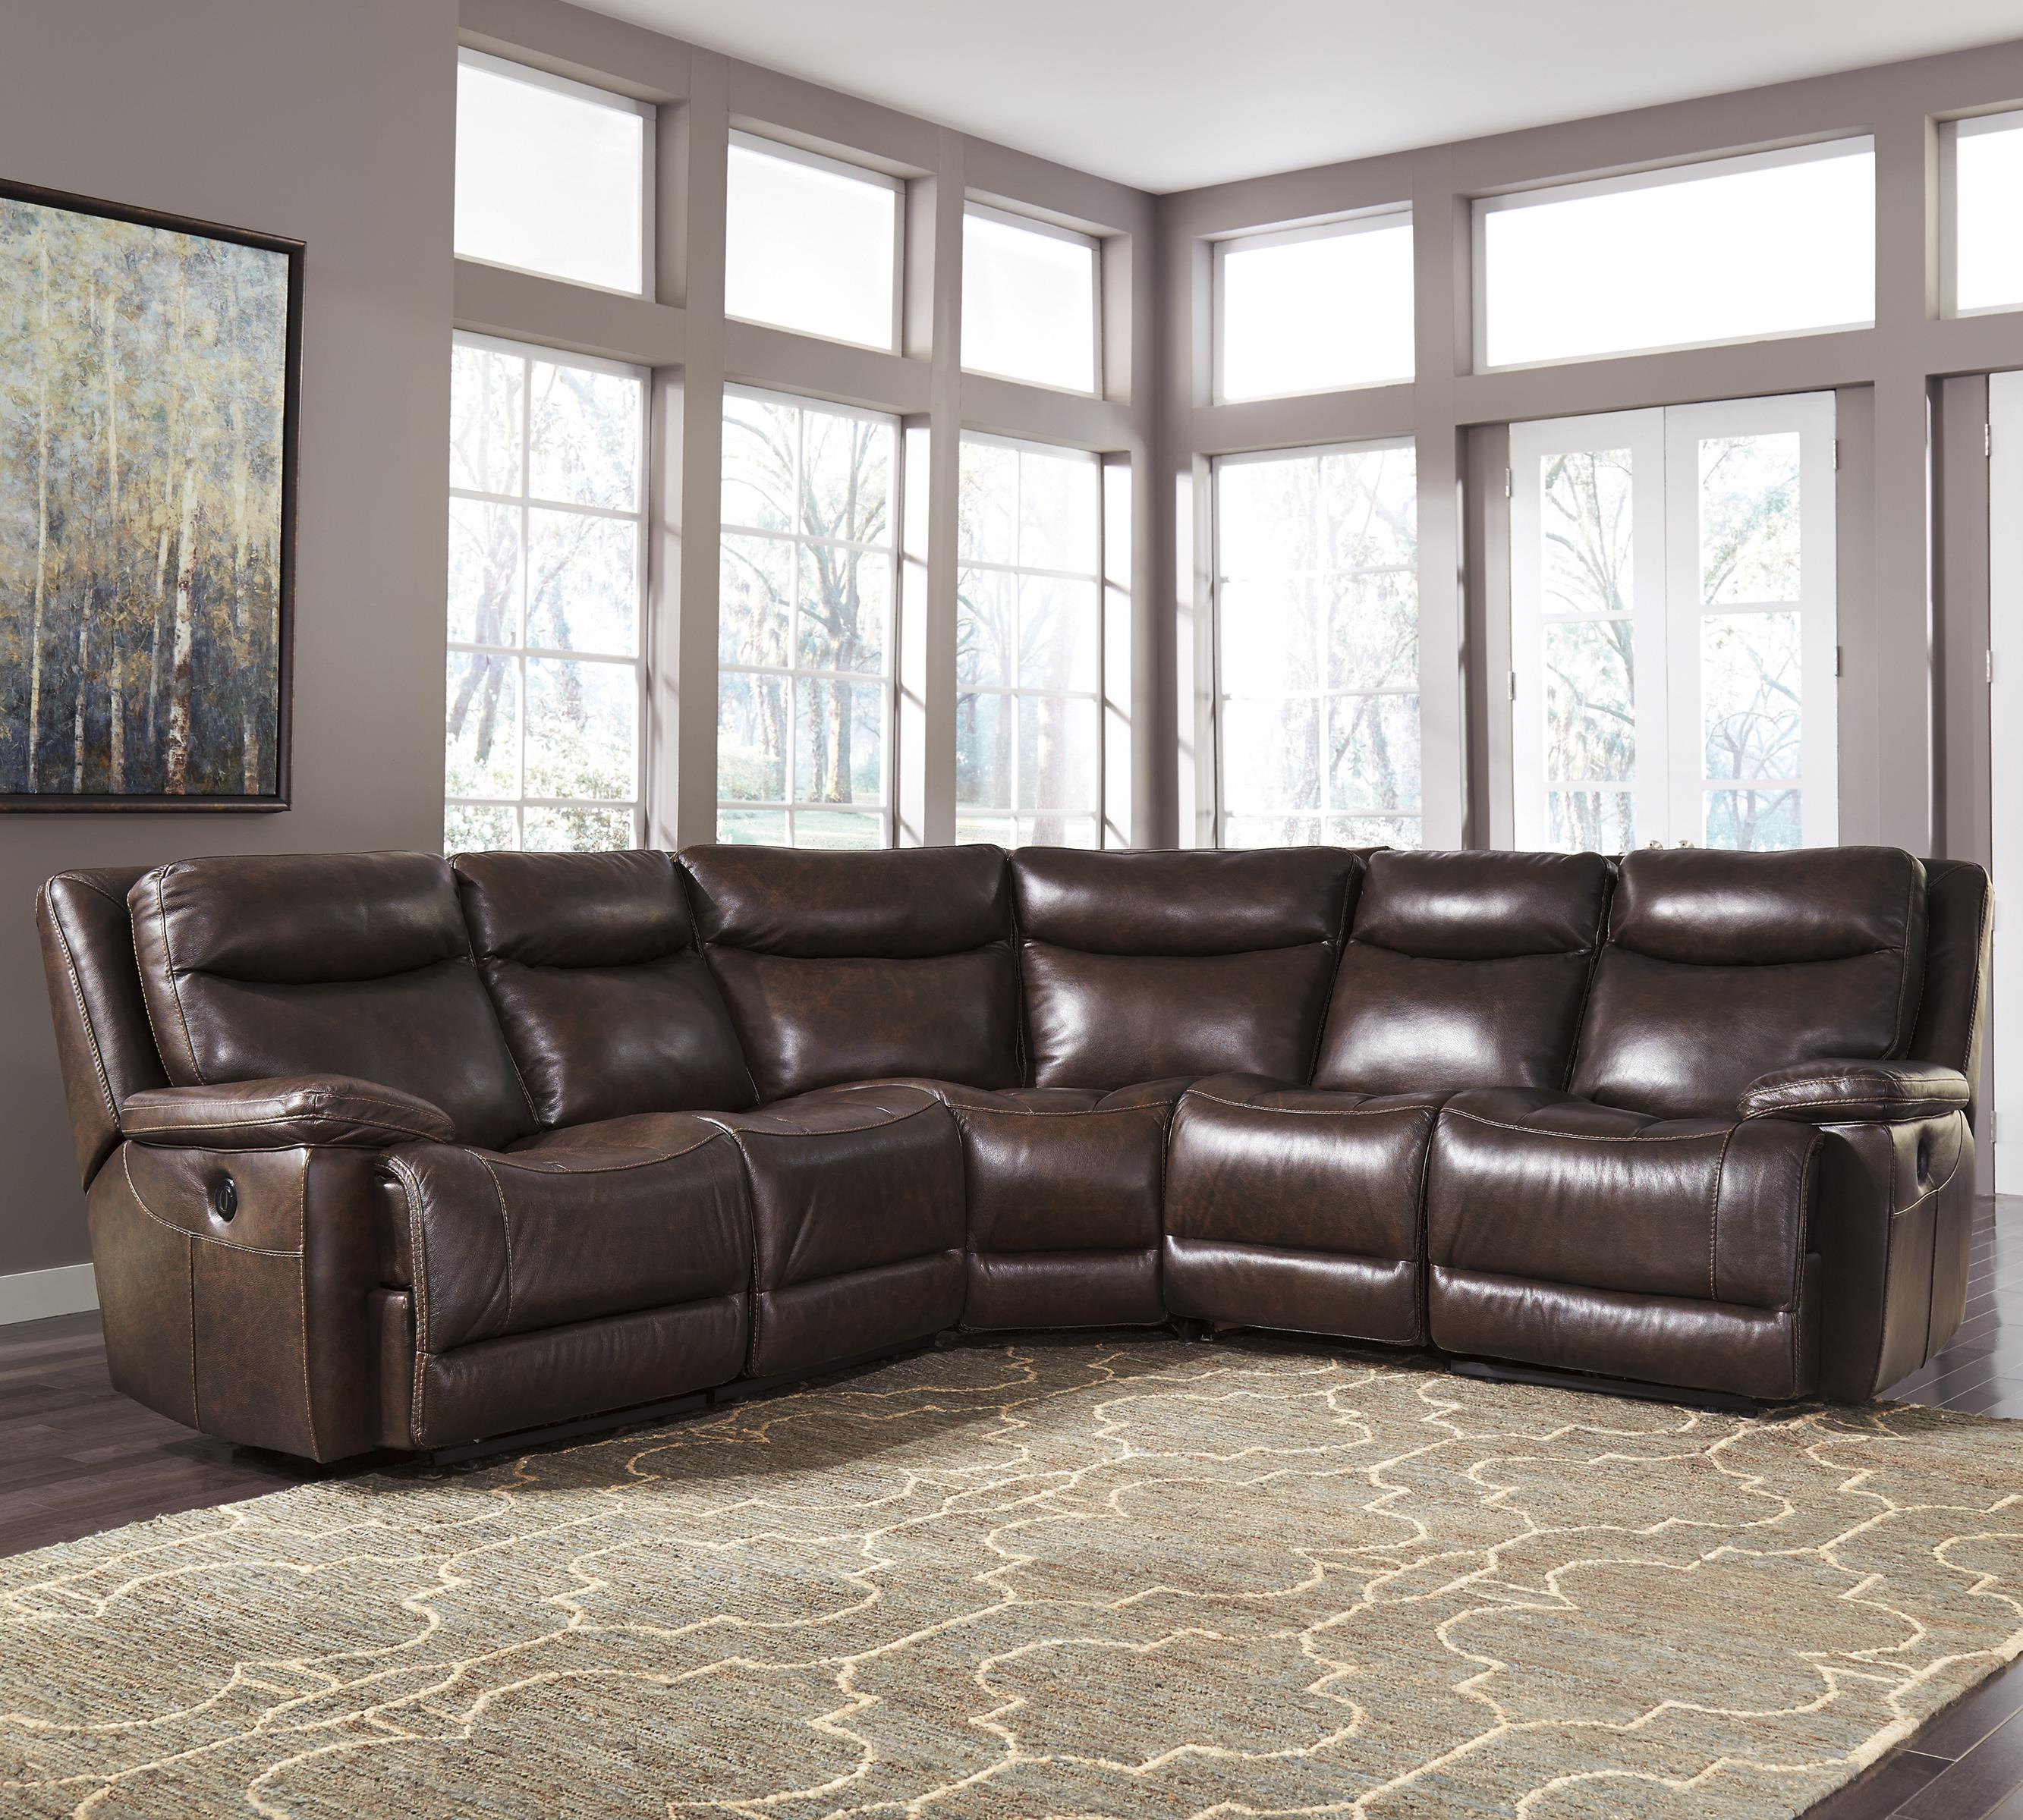 Signature Design by Ashley Zaiden Power Reclining Sectional - Item Number U7500158+19+ & Signature Design by Ashley Zaiden Contemporary Leather Match Power ... islam-shia.org